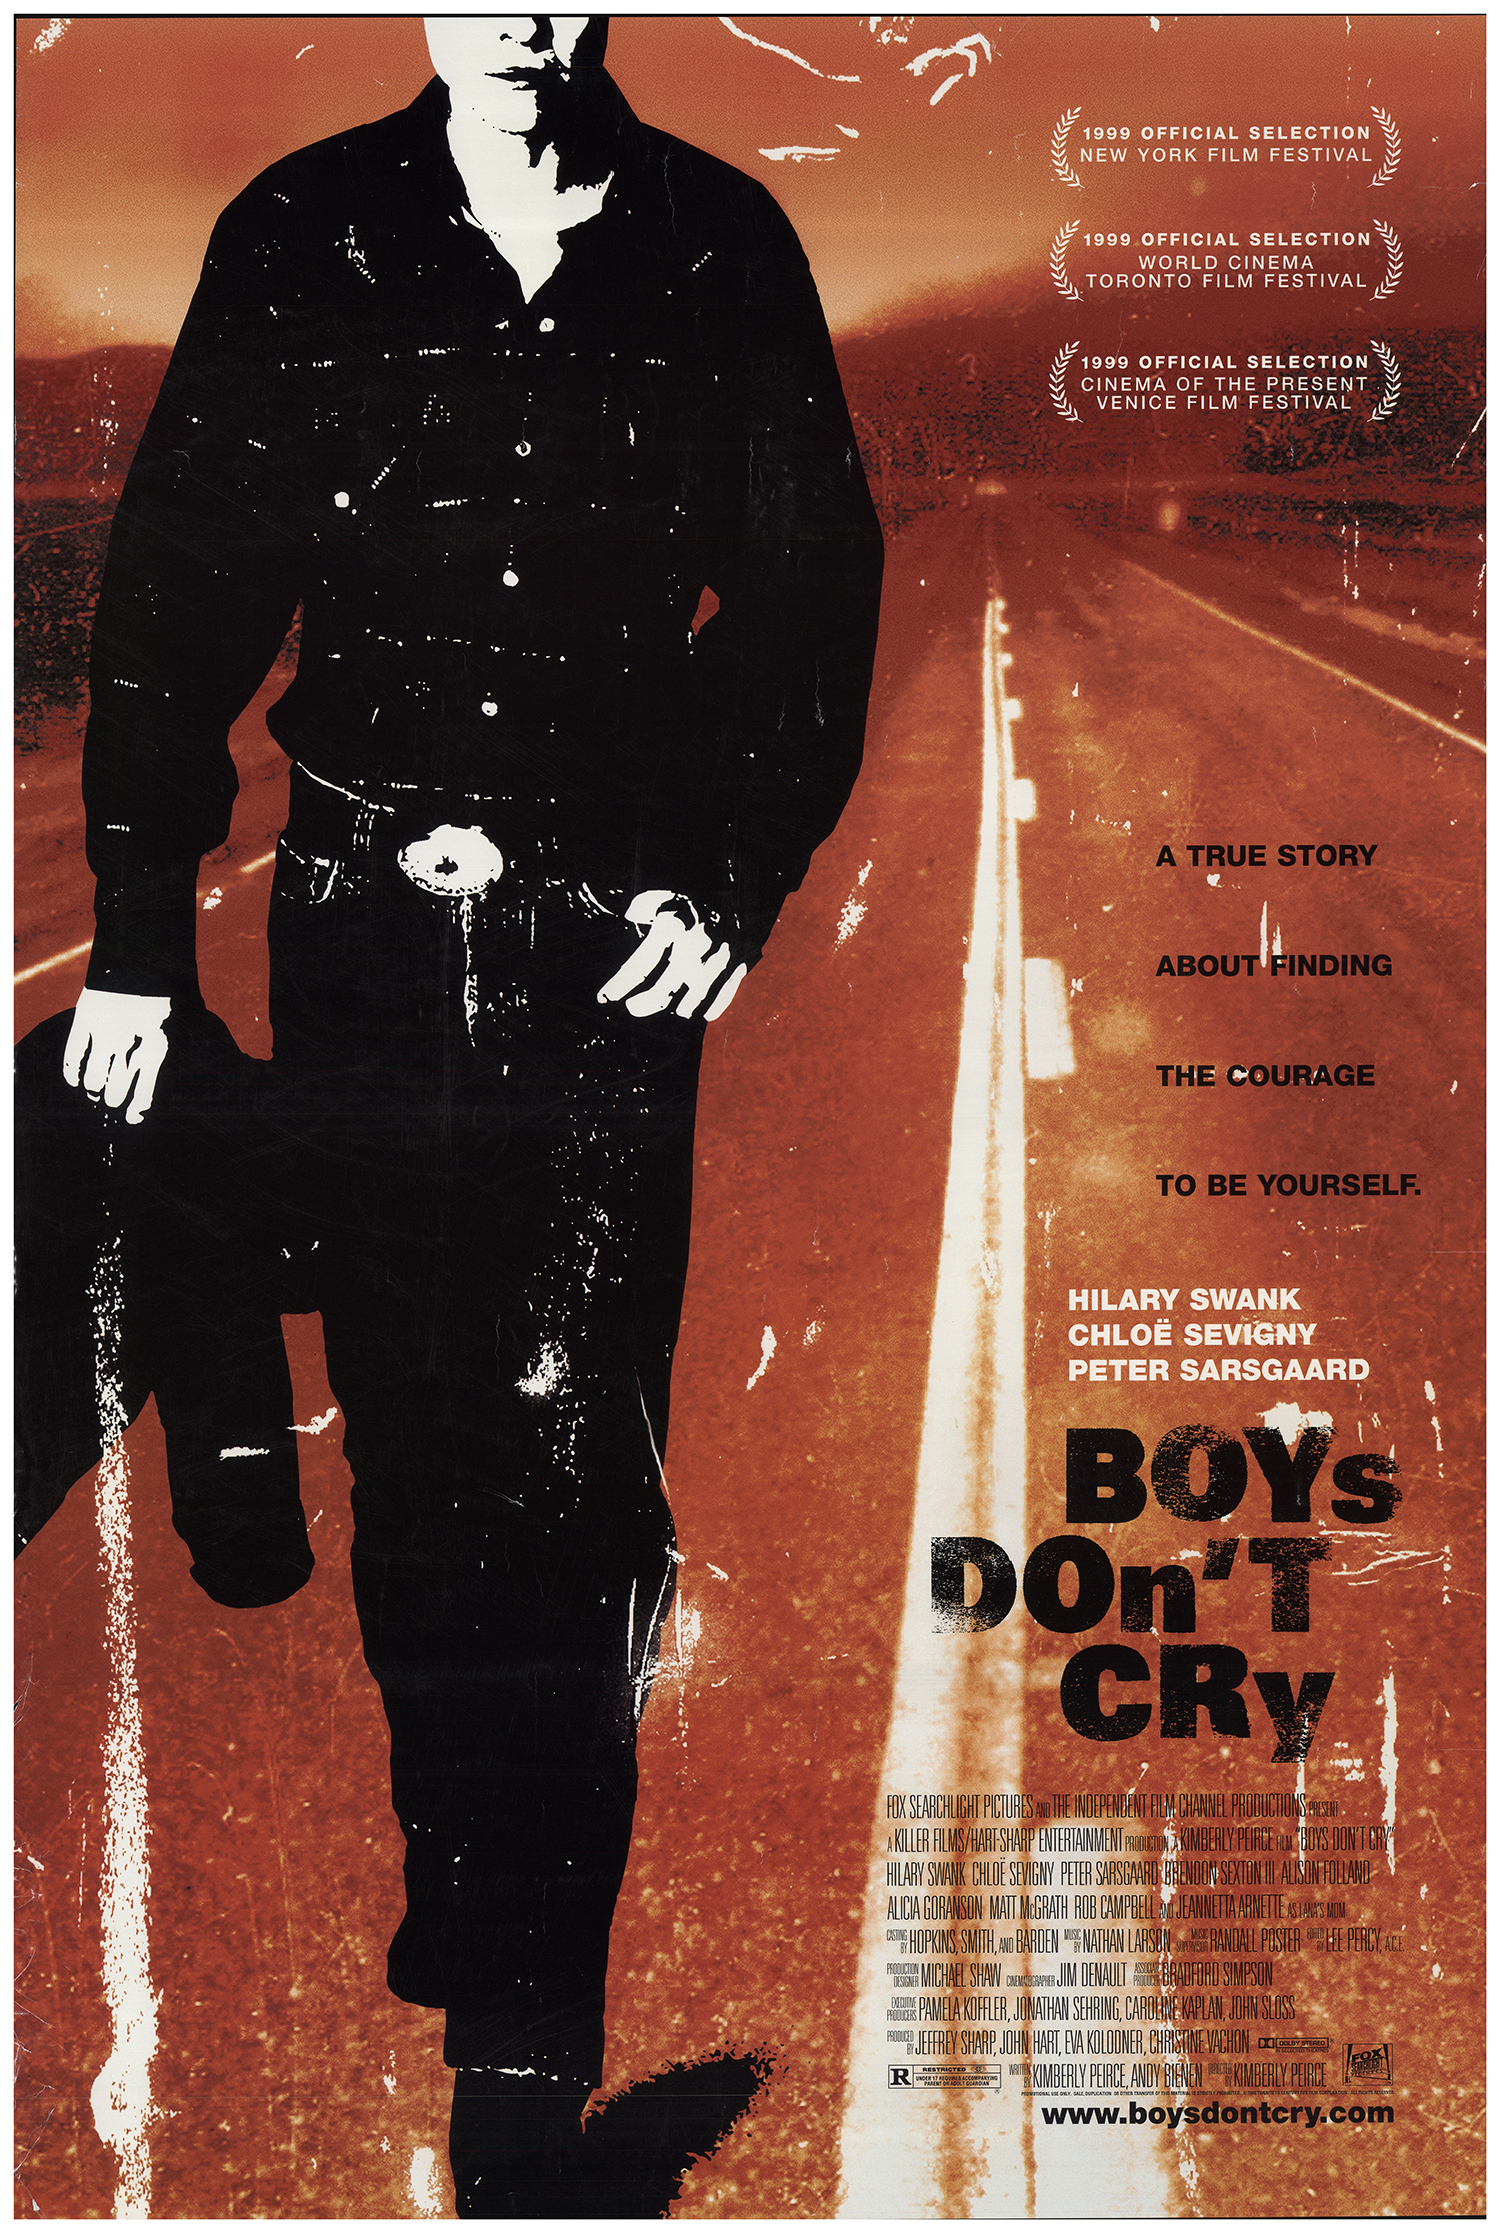 Promotional poster for BOYS DON'T CRY